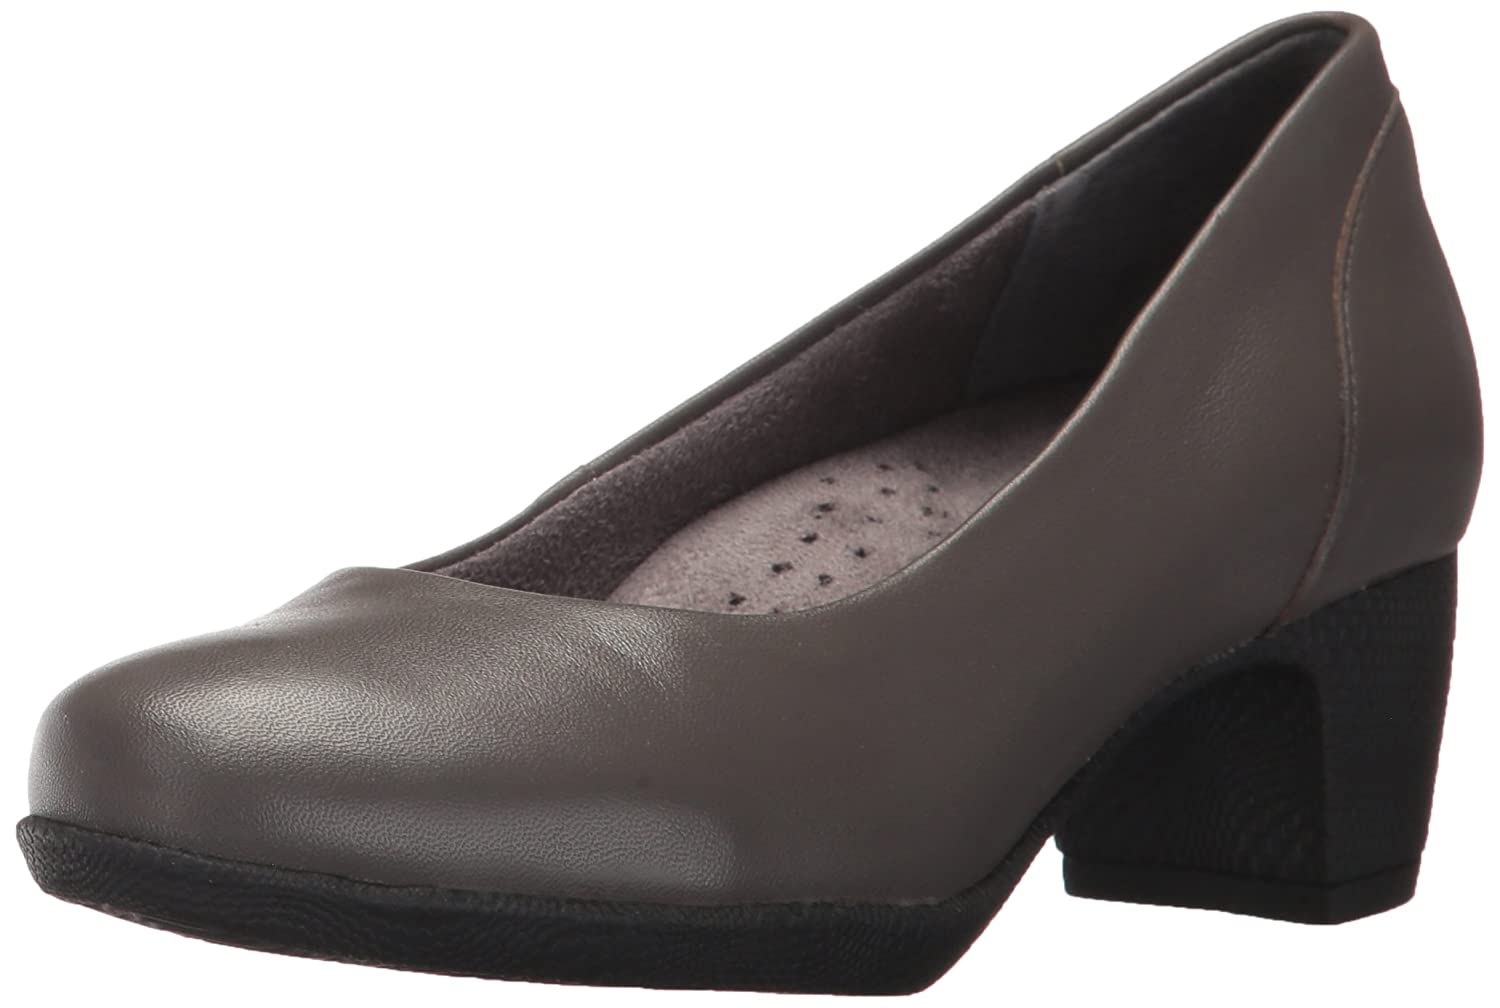 SoftWalk Women's Imperial Ii Dress Pump B01N2WBCG4 12 B(M) US|Dark Grey